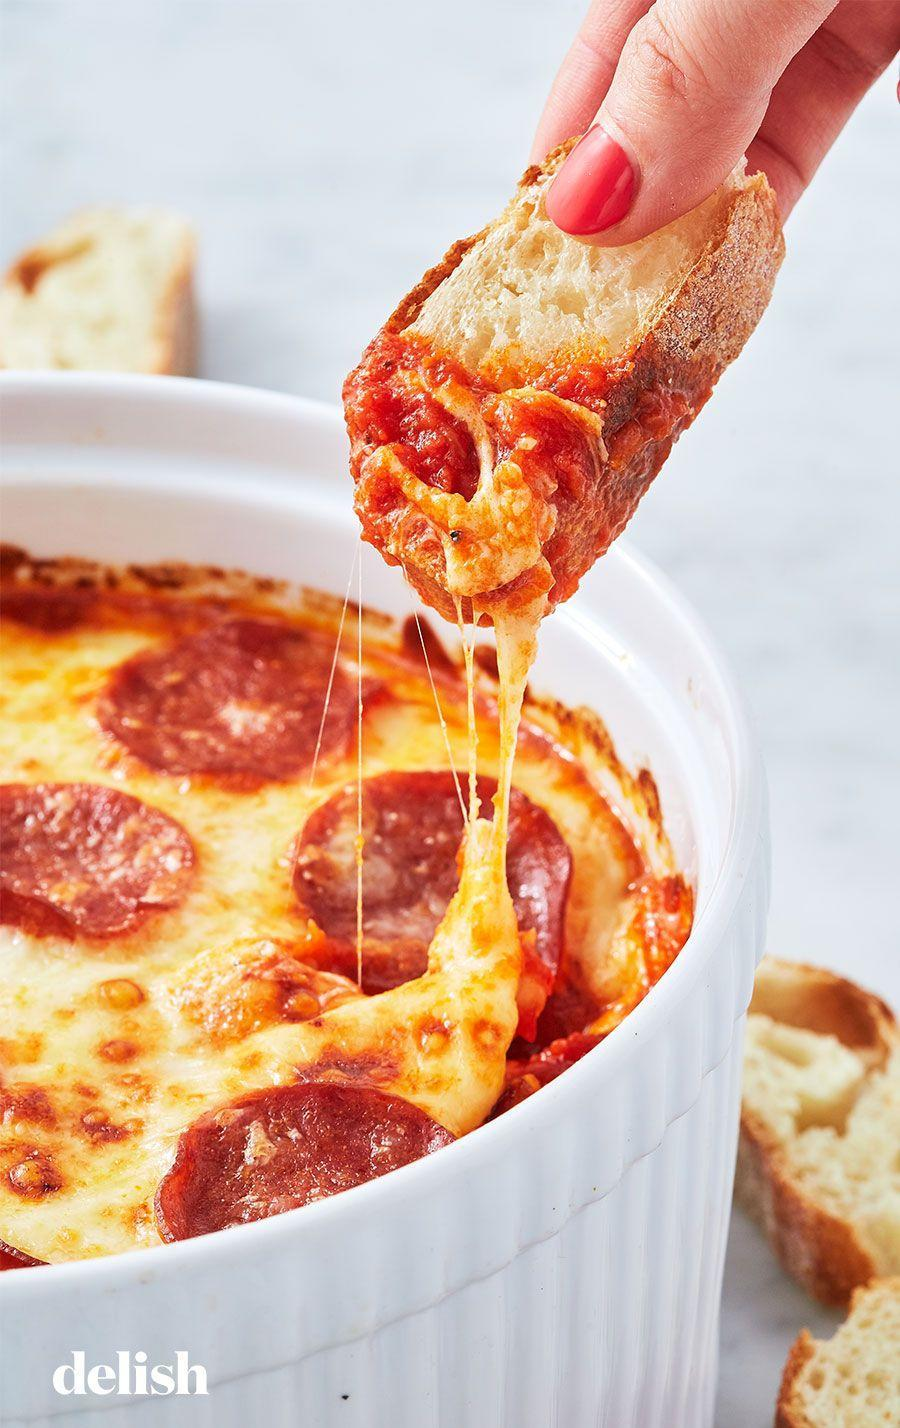 """<p>Meet the party app of your (cheese-filled) dreams.</p><p>Get the recipe from <a href=""""https://www.delish.com/cooking/recipe-ideas/a26001169/pizza-dip-recipe/"""" rel=""""nofollow noopener"""" target=""""_blank"""" data-ylk=""""slk:Delish"""" class=""""link rapid-noclick-resp"""">Delish</a>.</p>"""